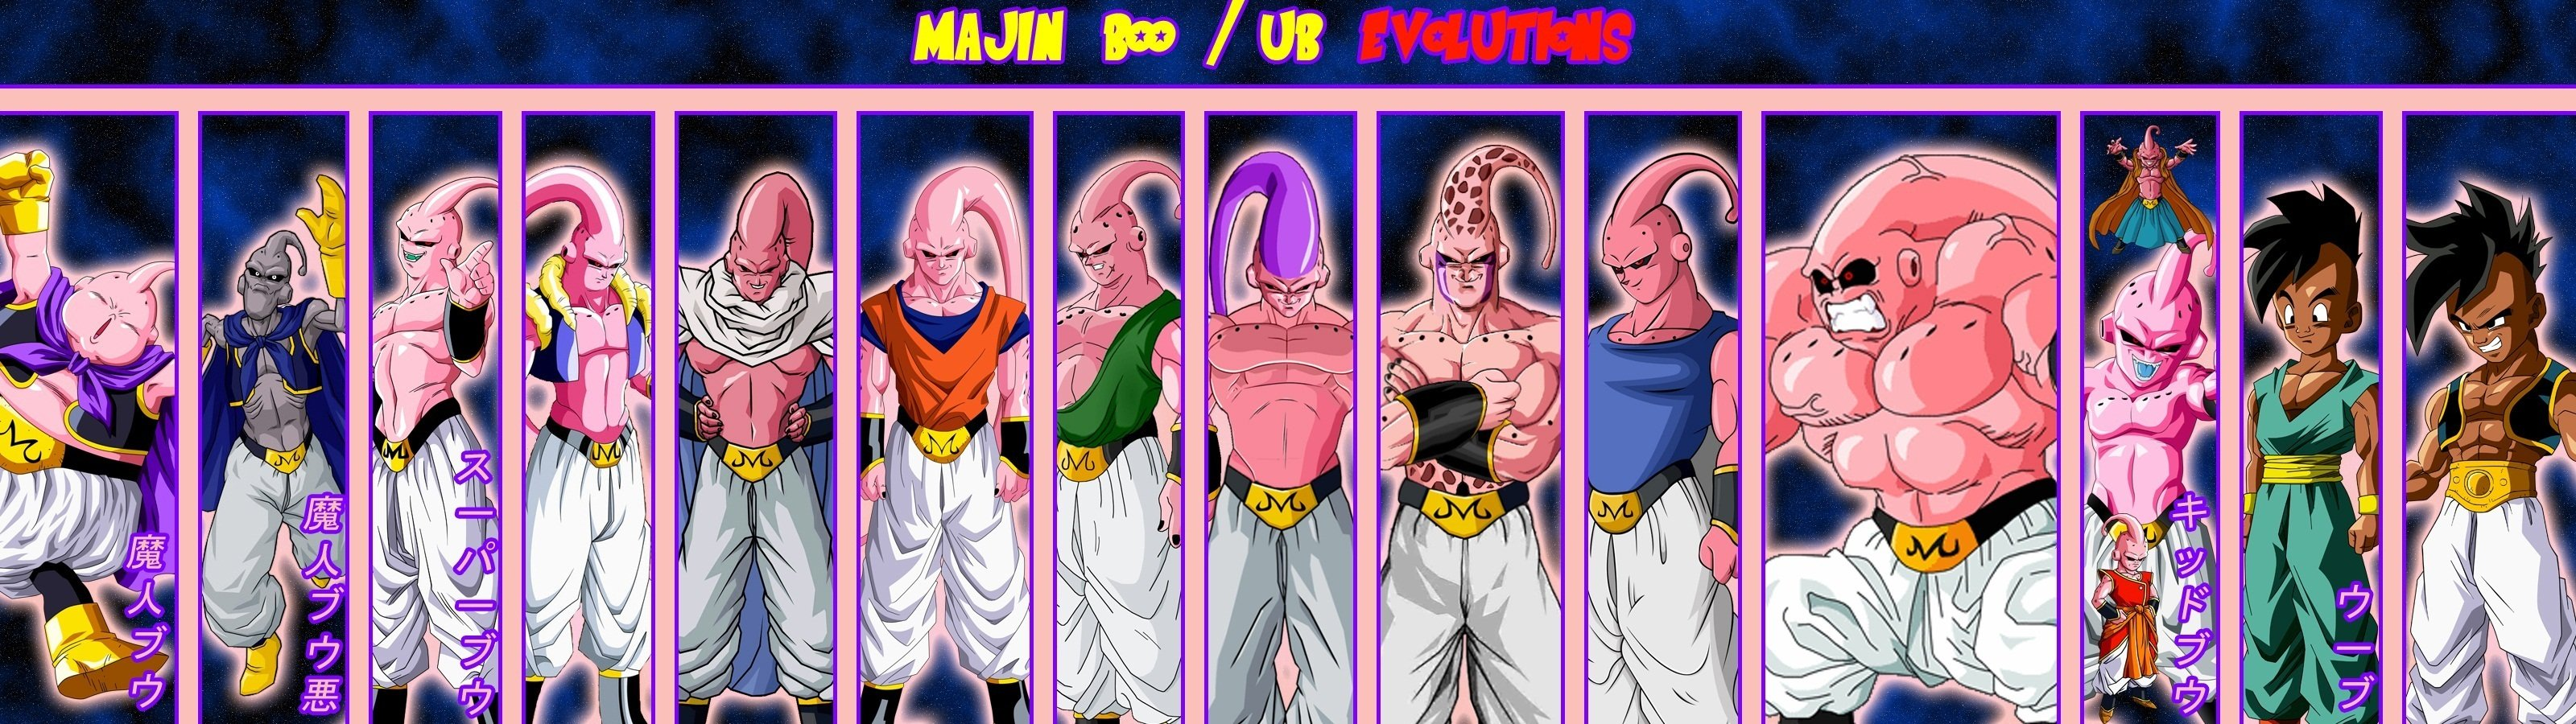 High resolution Dragon Ball Z (DBZ) dual monitor 3200x900 background ID:462184 for desktop